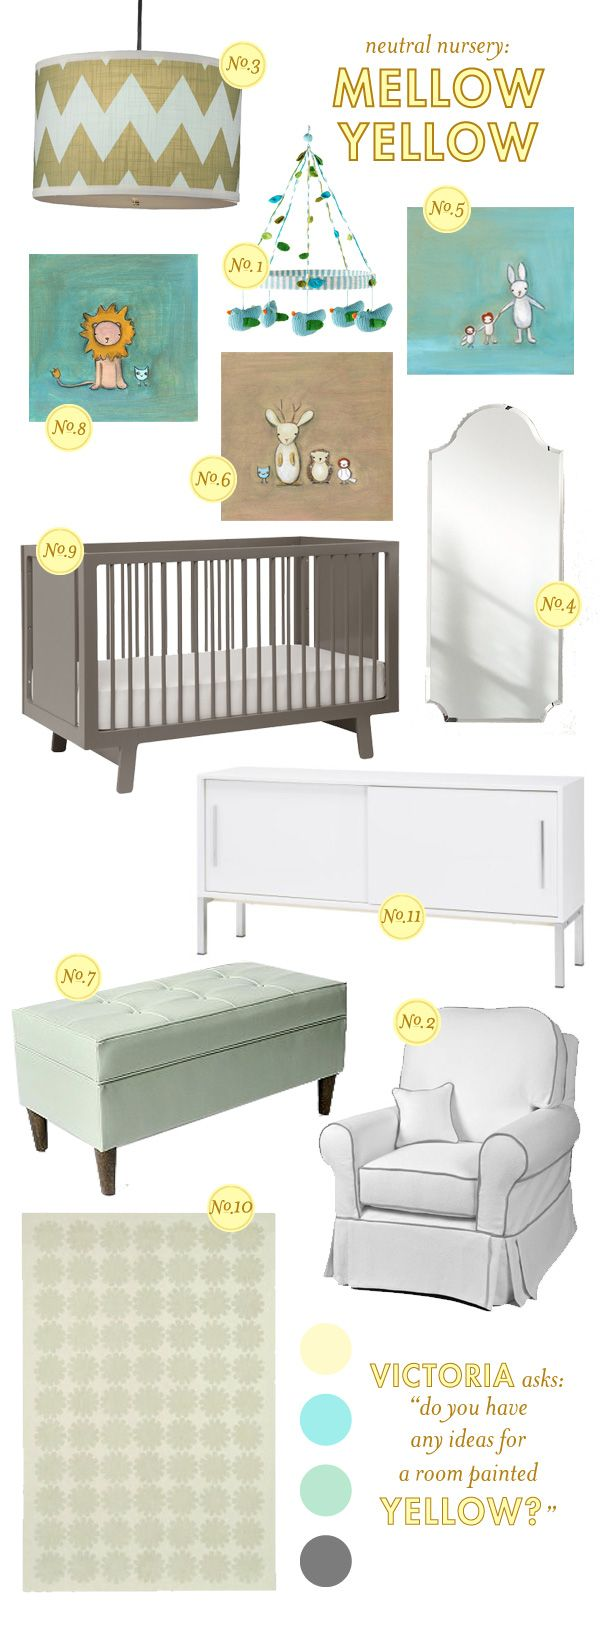 Neutral nursery. Great colors.: Style Boards, Mellow Yellow, Baby Lay, Baby Rooms, Neutral Nurseries, Mellowyellow, Yellow Nurseries, Nurseries Ideas, Baby Nurseries